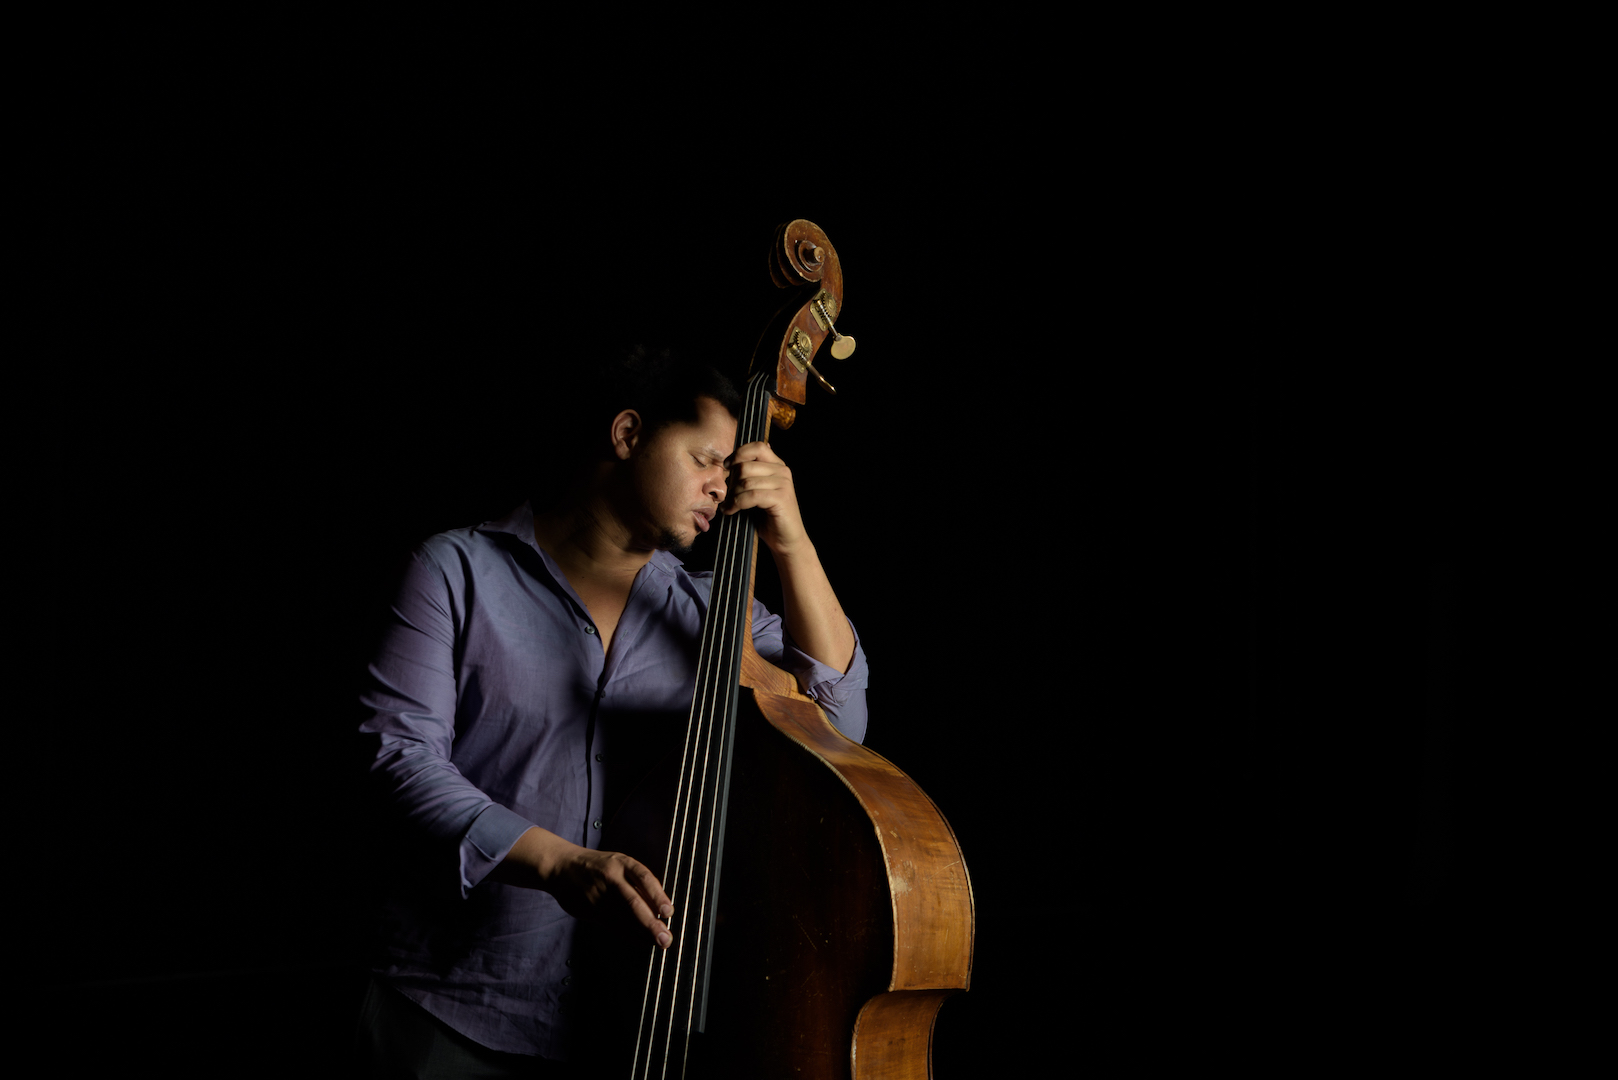 Seattle bassist Evan Flory-Barnes